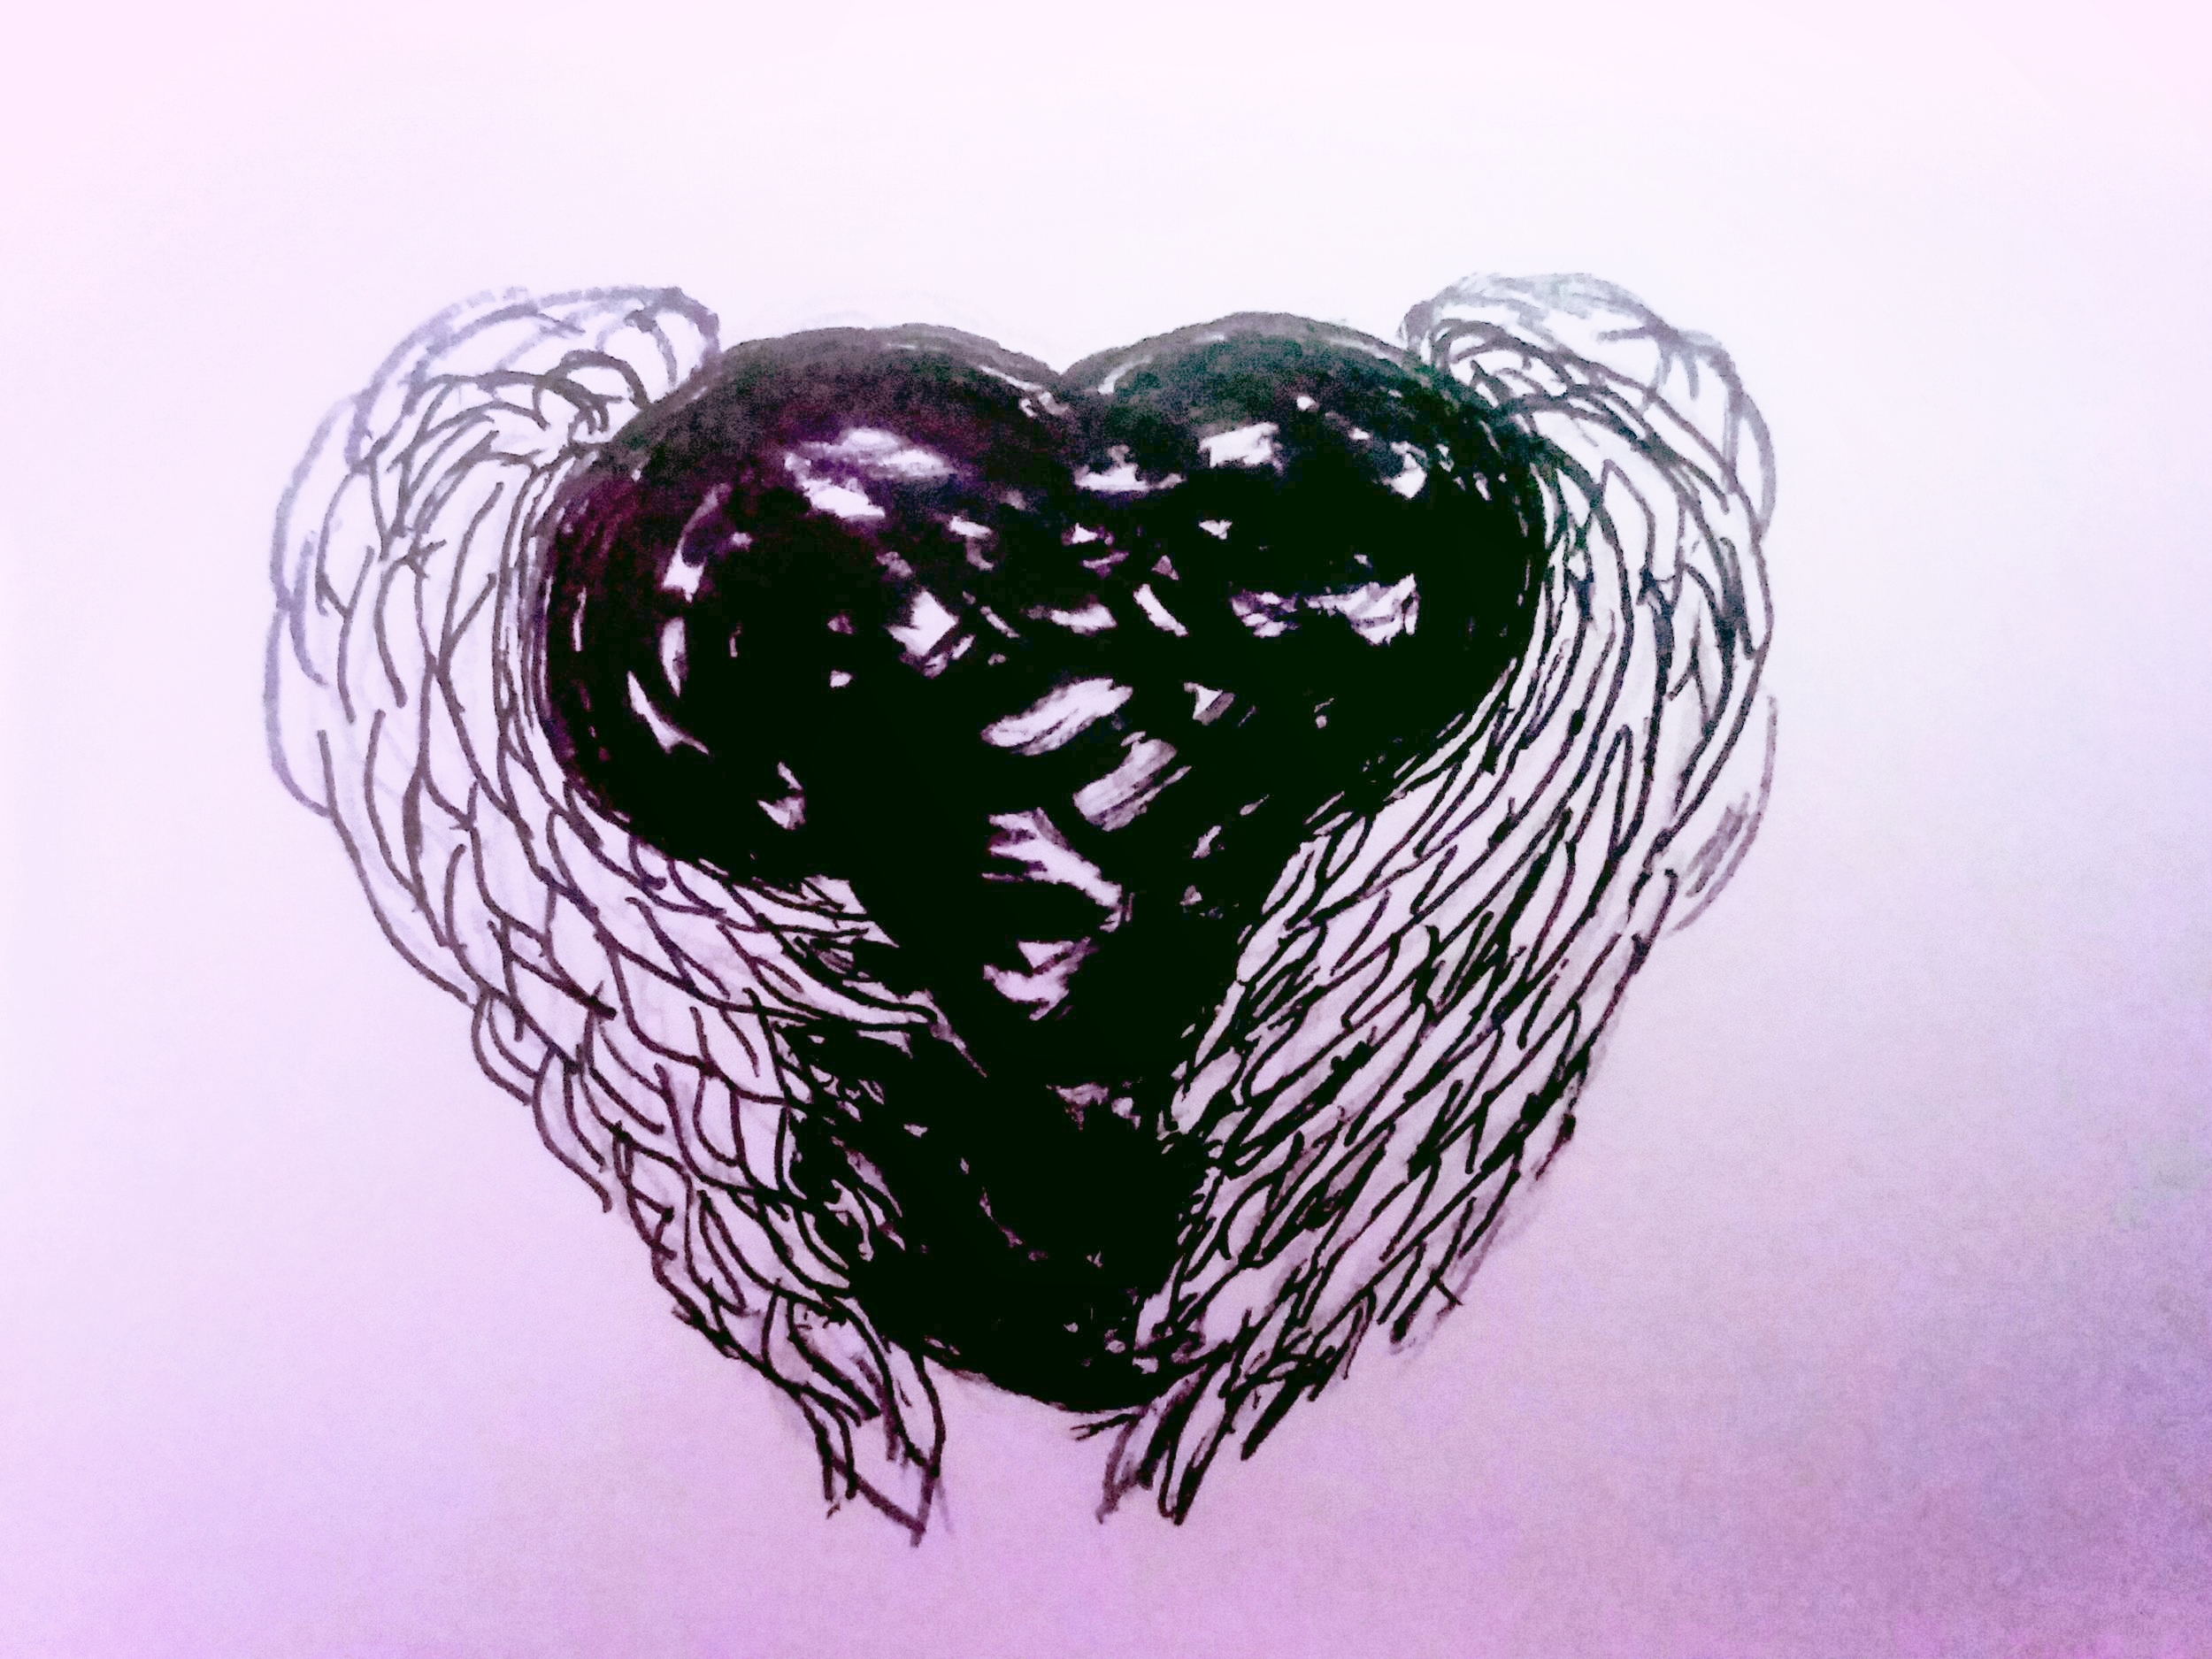 Guarded - Day 13   The Guarded Heart